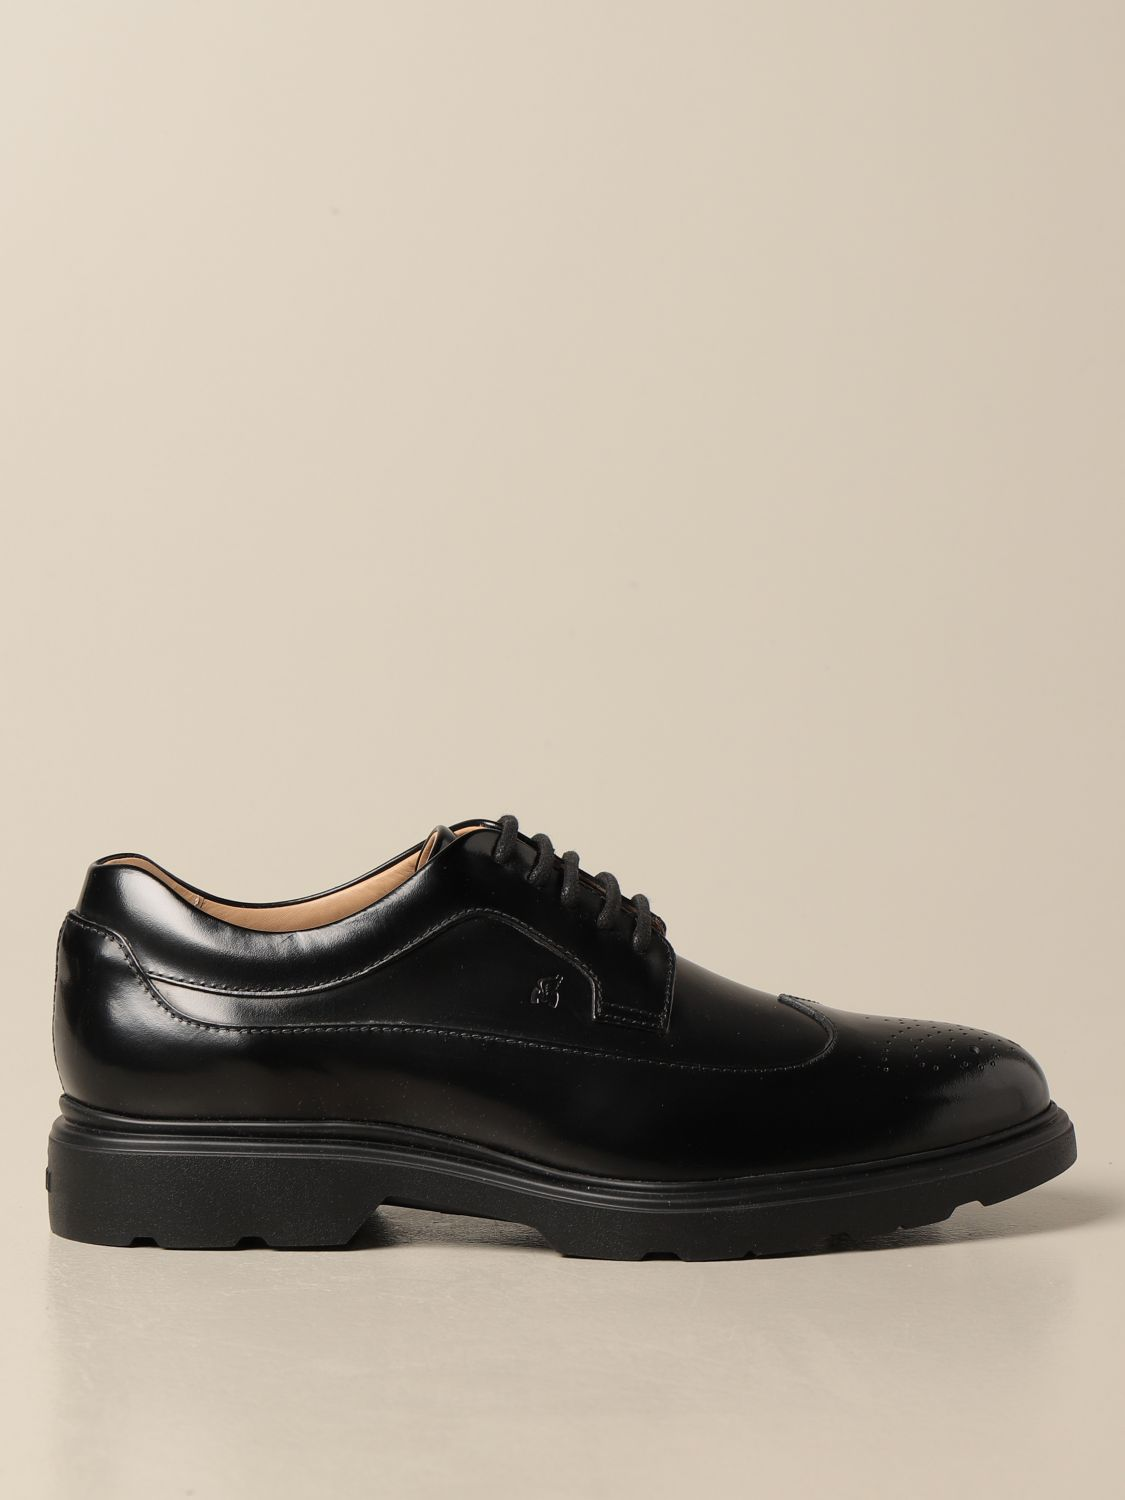 H393 Hogan derby in leather with brogue motif